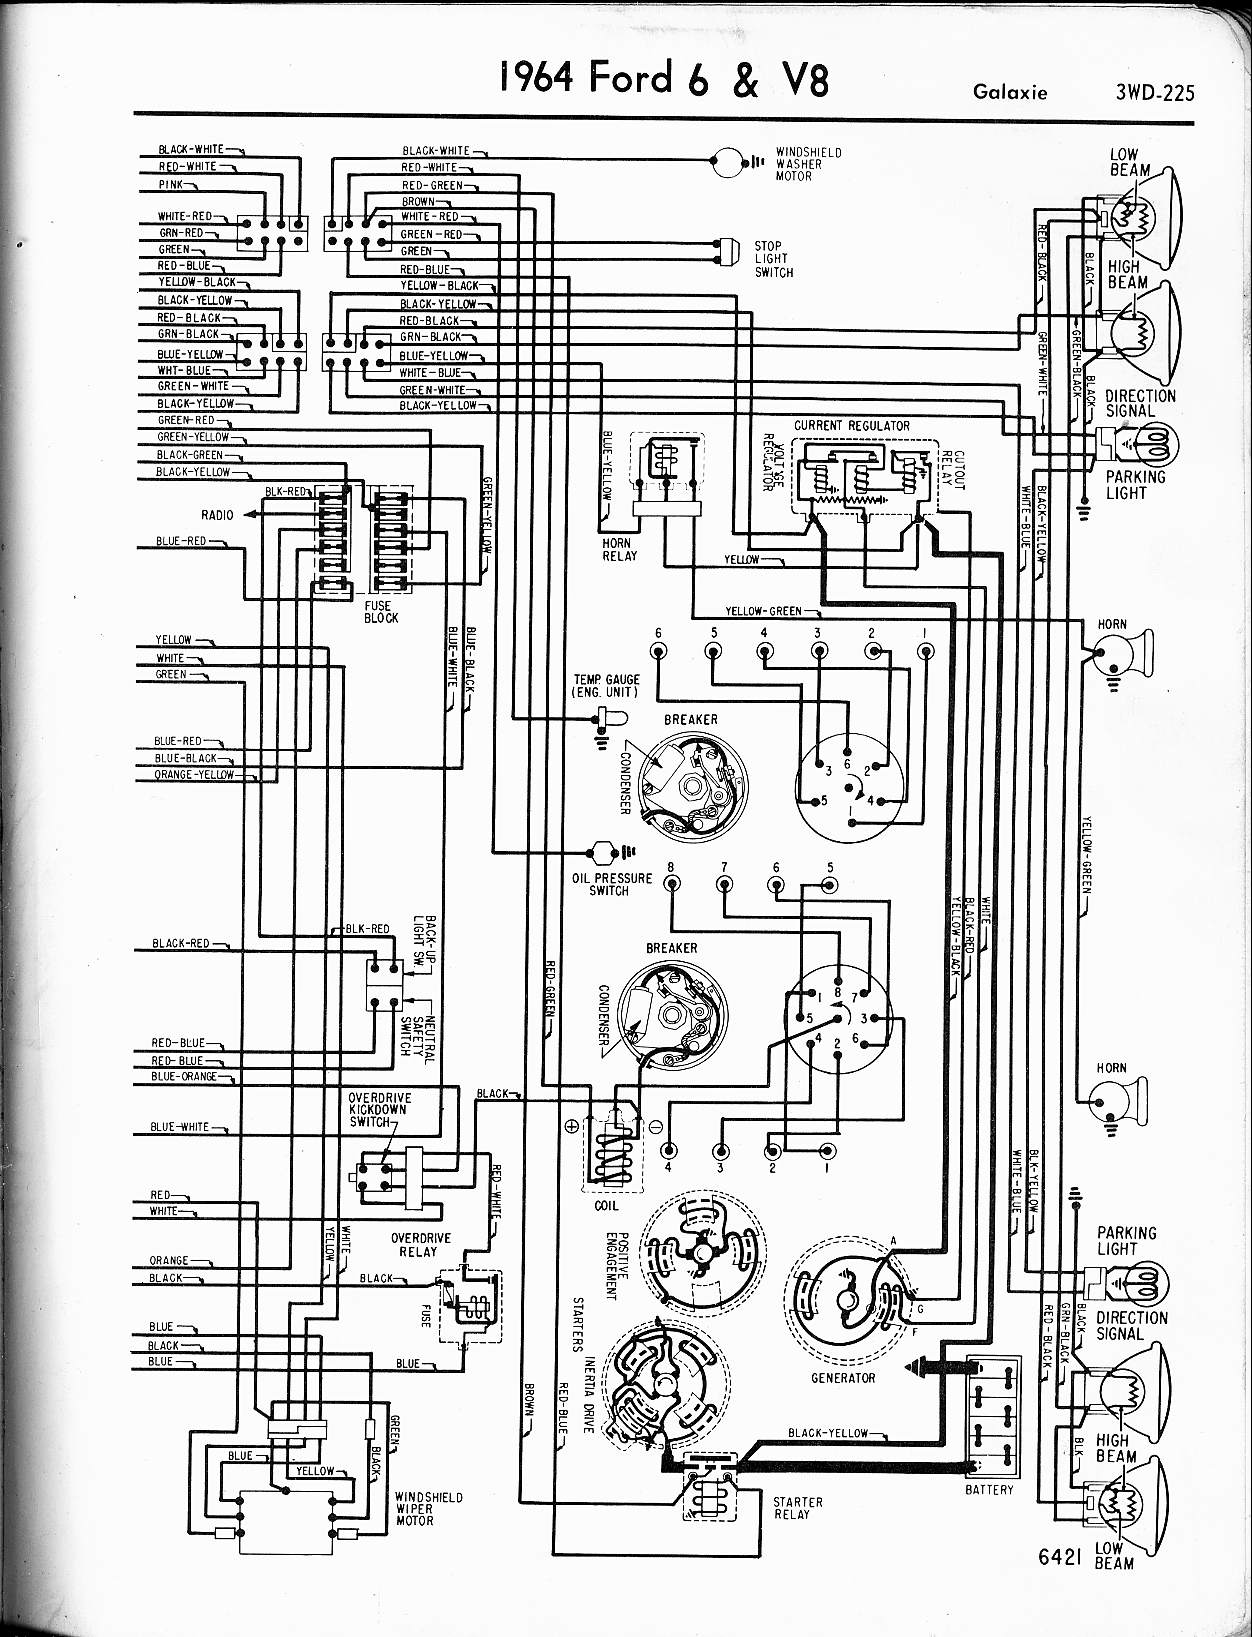 MWire5765 225 1964 wiring woes ford muscle forums ford muscle cars tech forum 1964 falcon wiring diagram at nearapp.co